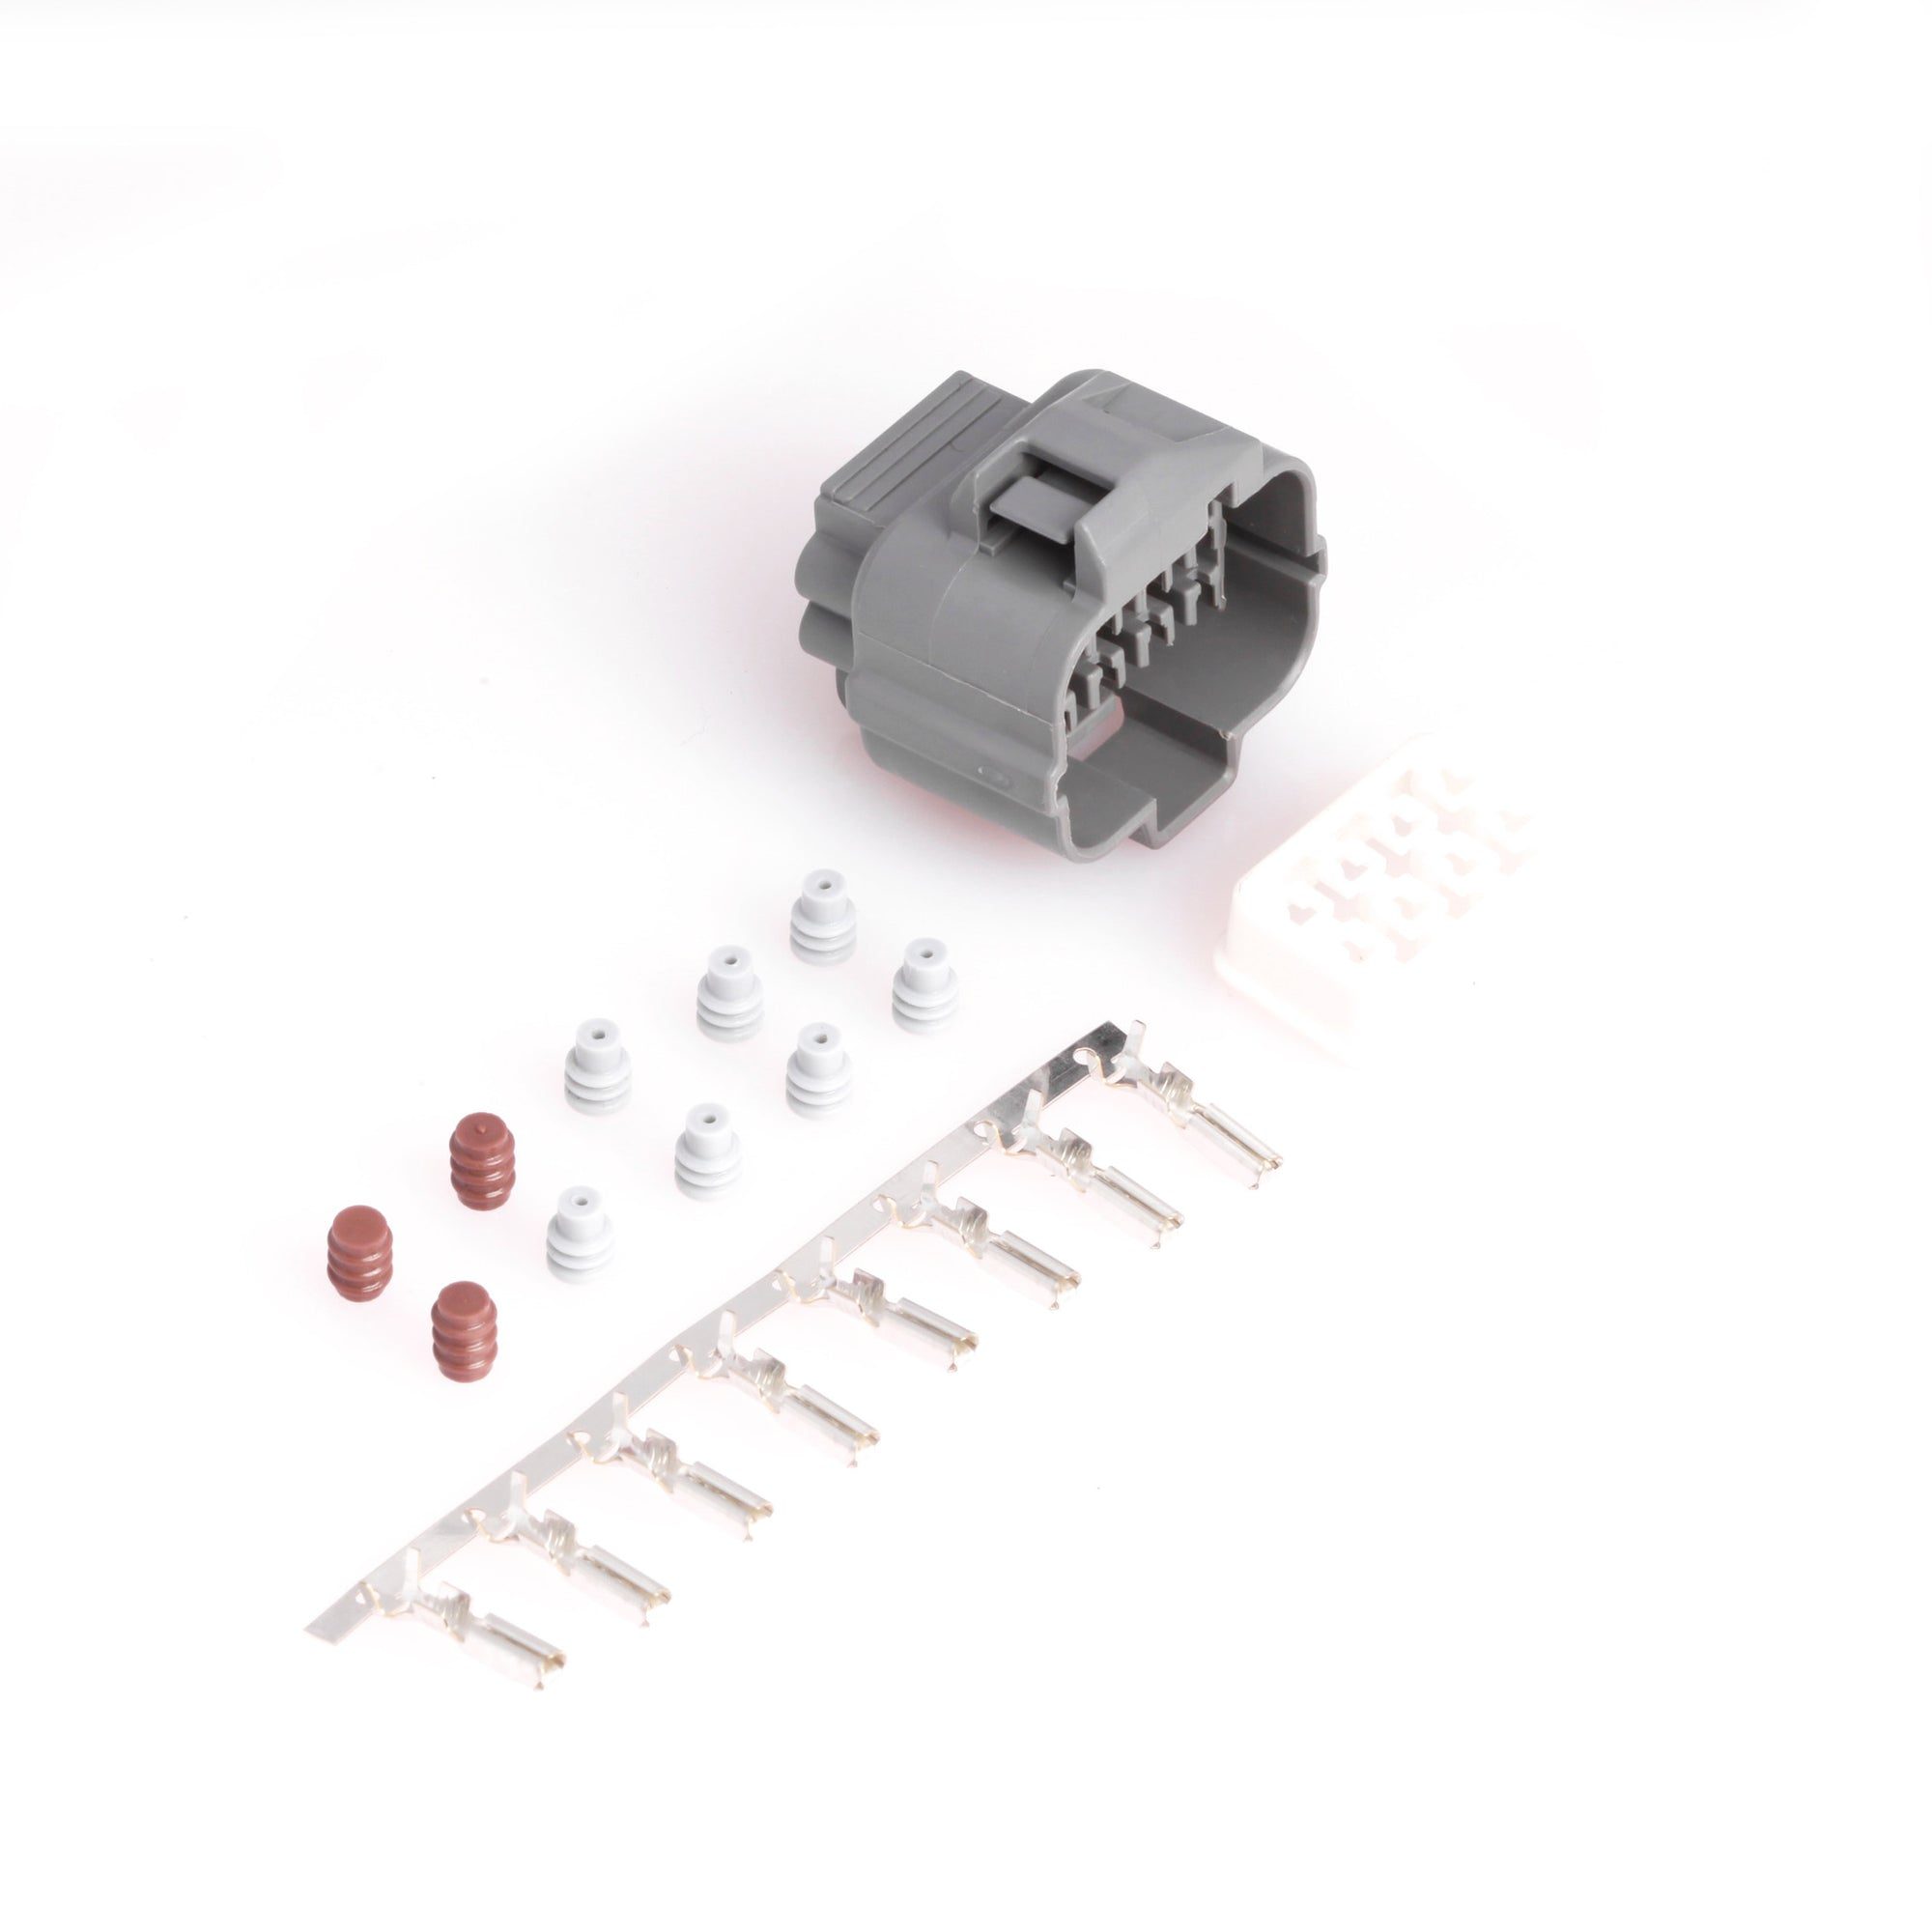 Connectors - NTK Lambda Connector Kit